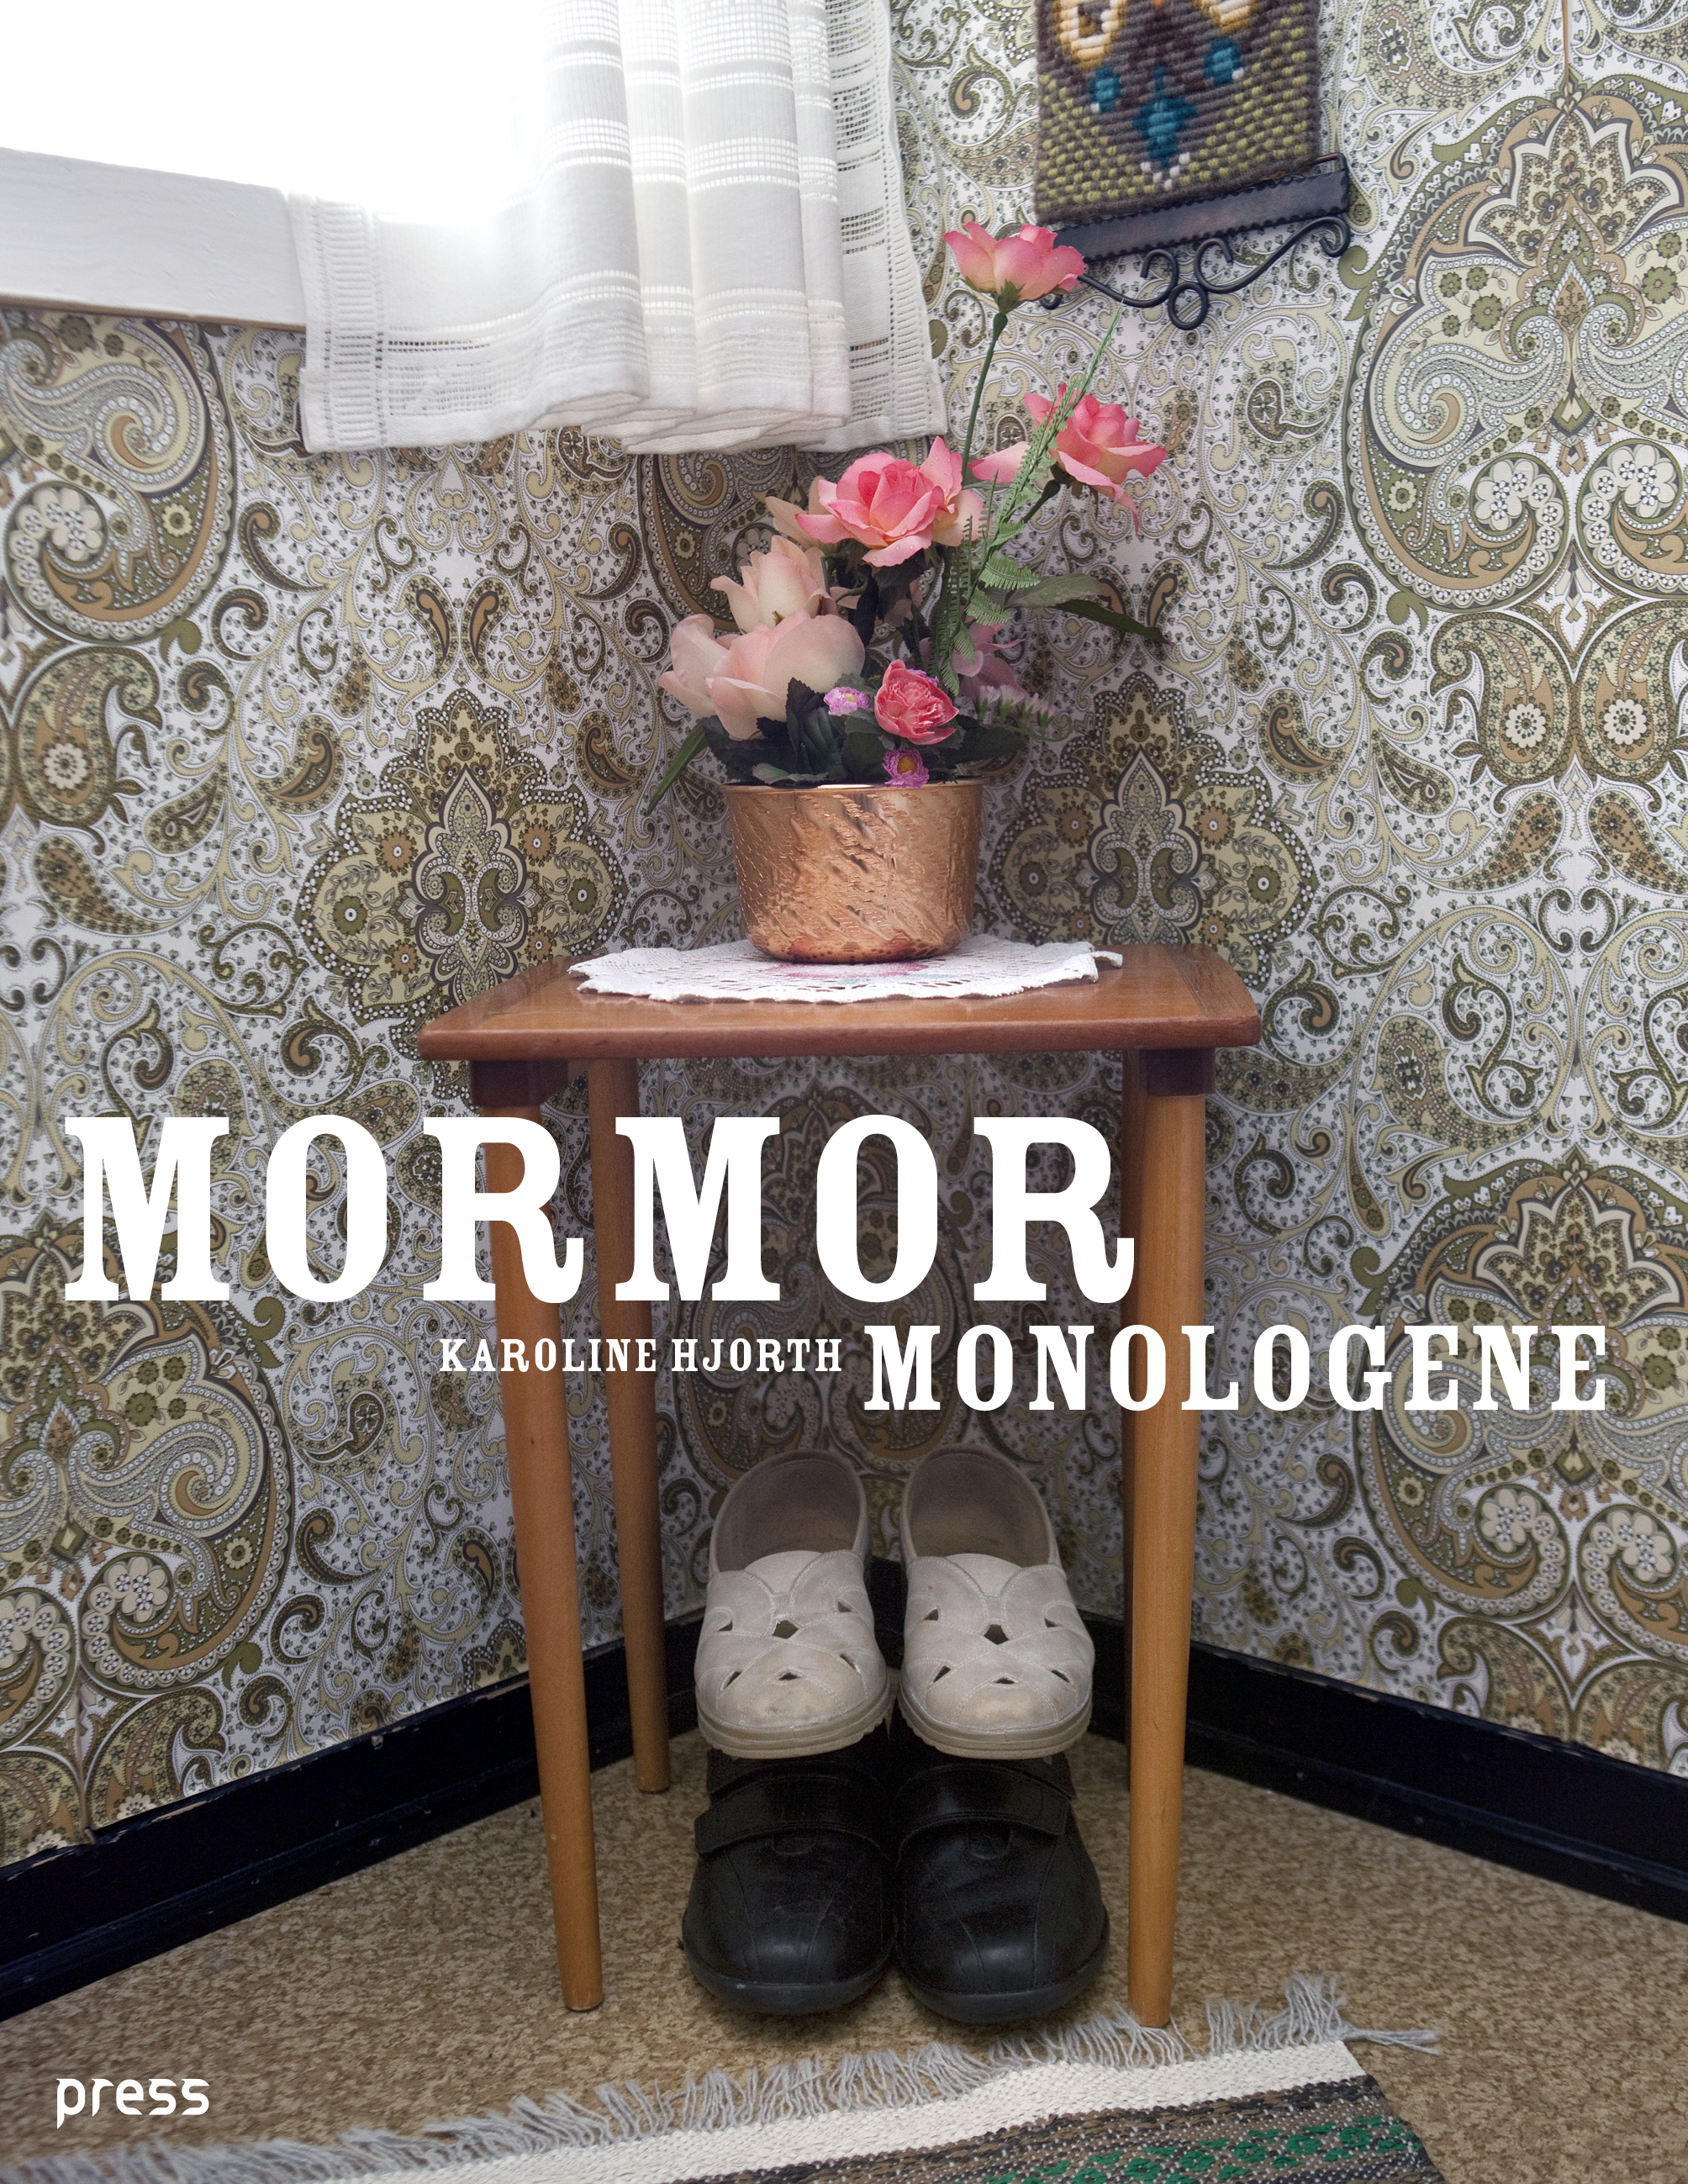 Mormormonologene pocket